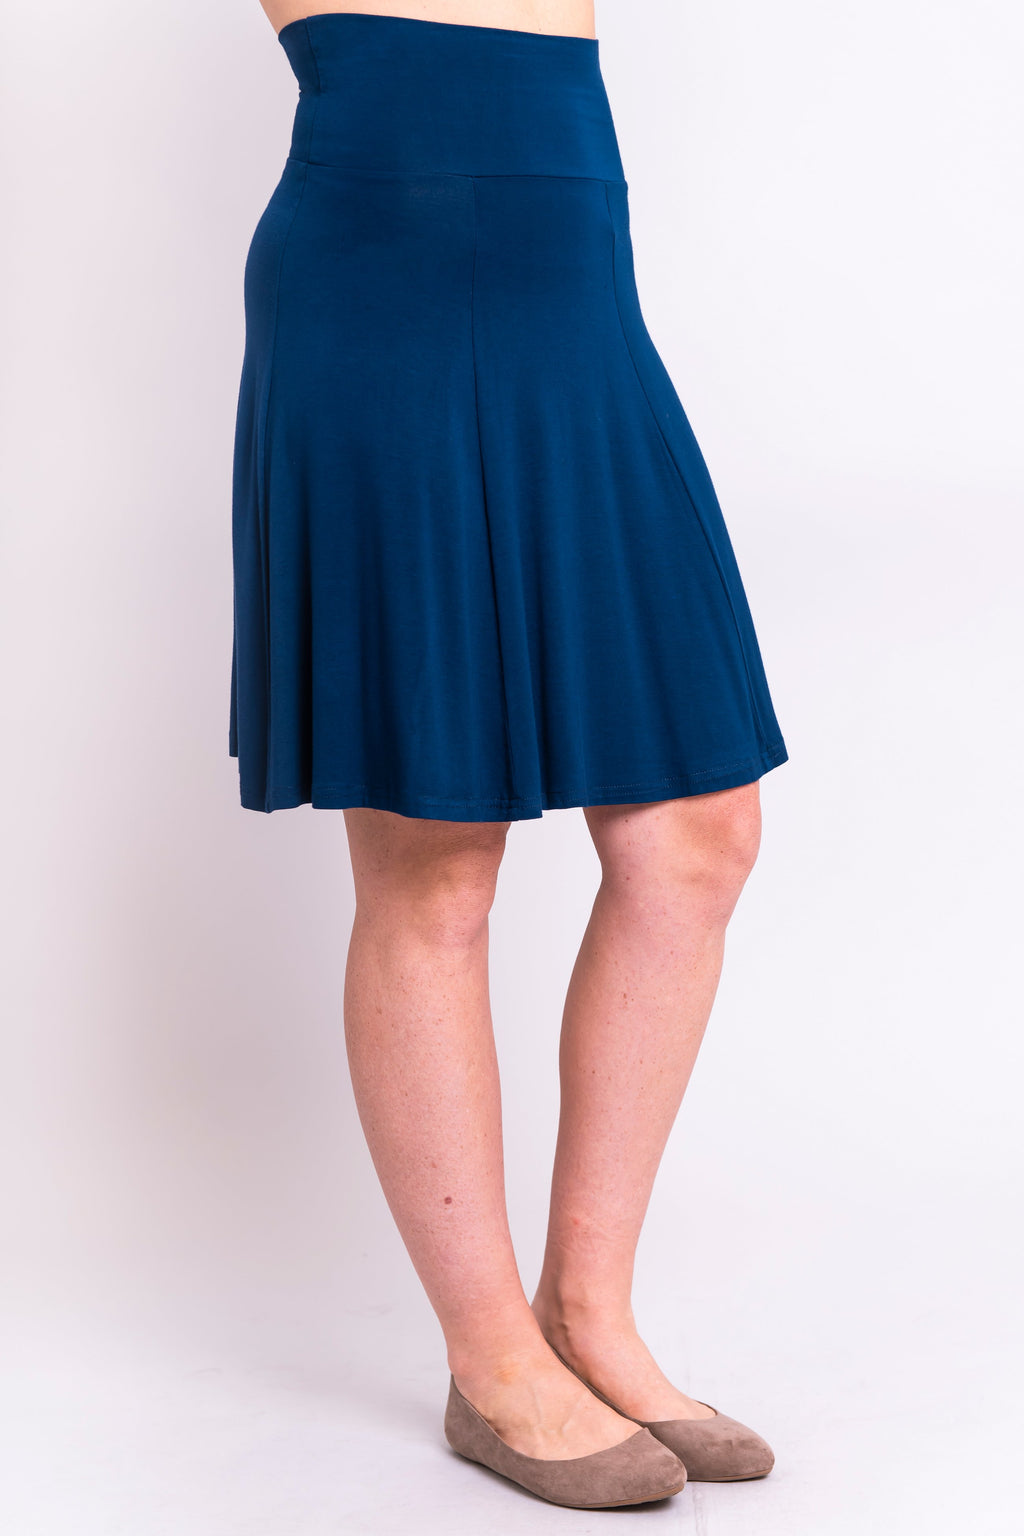 Aly Skirt, Indigo - Blue Sky Clothing Co